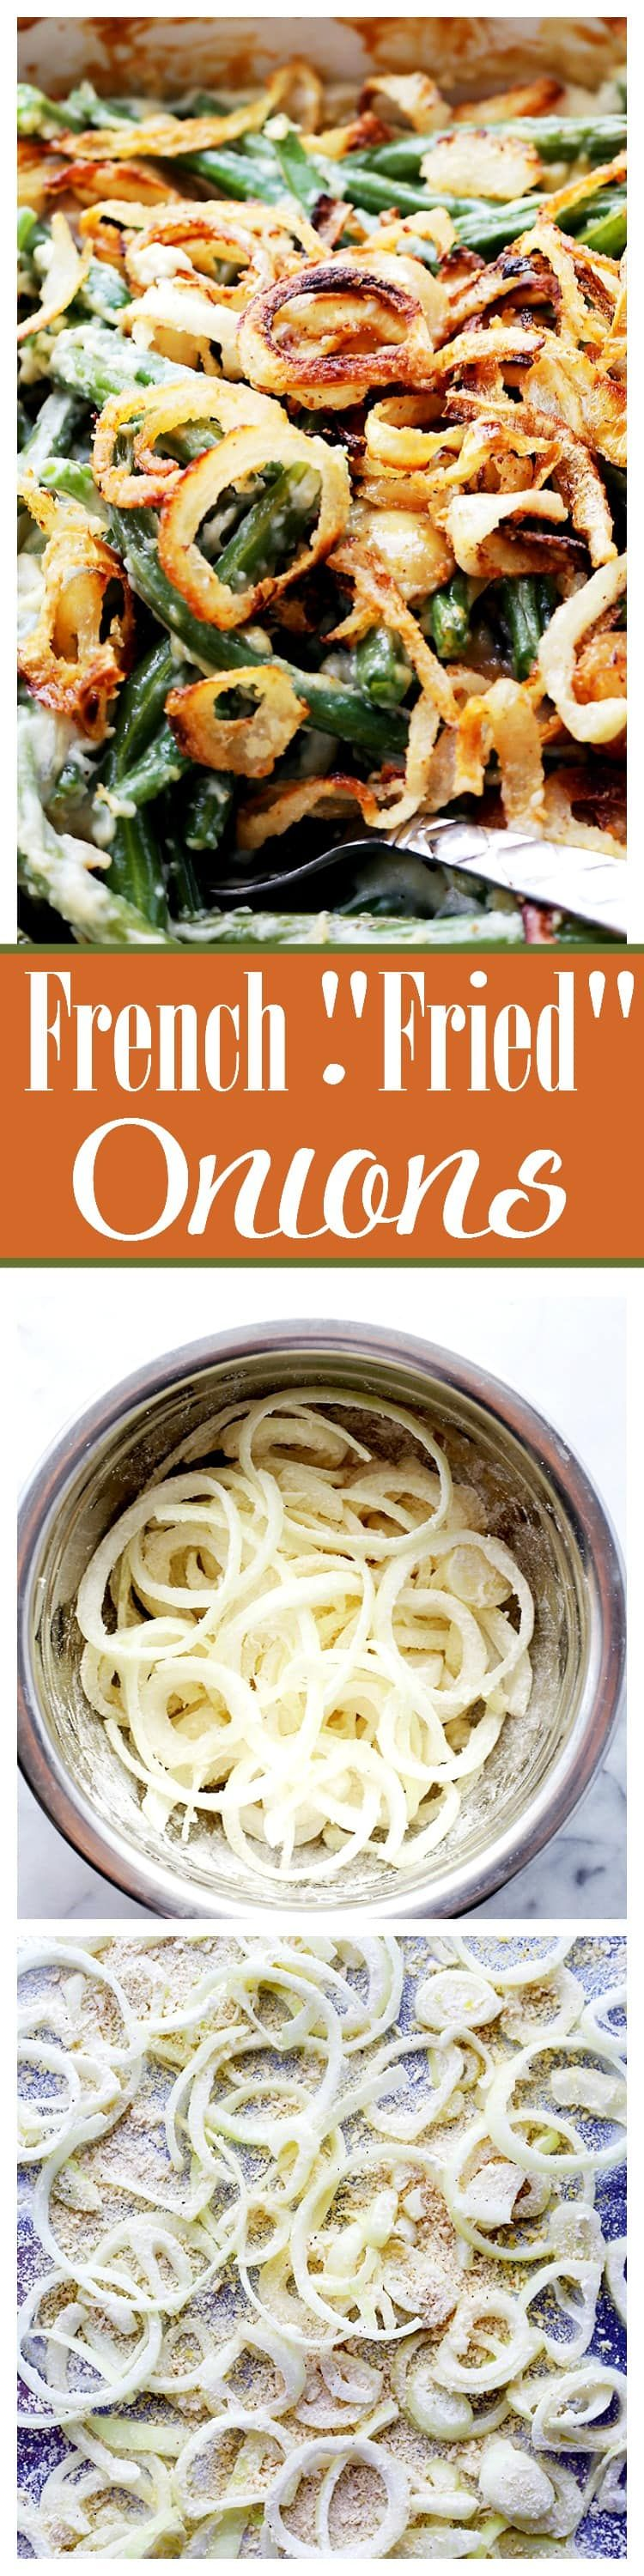 "Homemade French ""Fried"" Onions Topping - A delicious homemade AND baked alternative to those store-bought French Fried Onions."